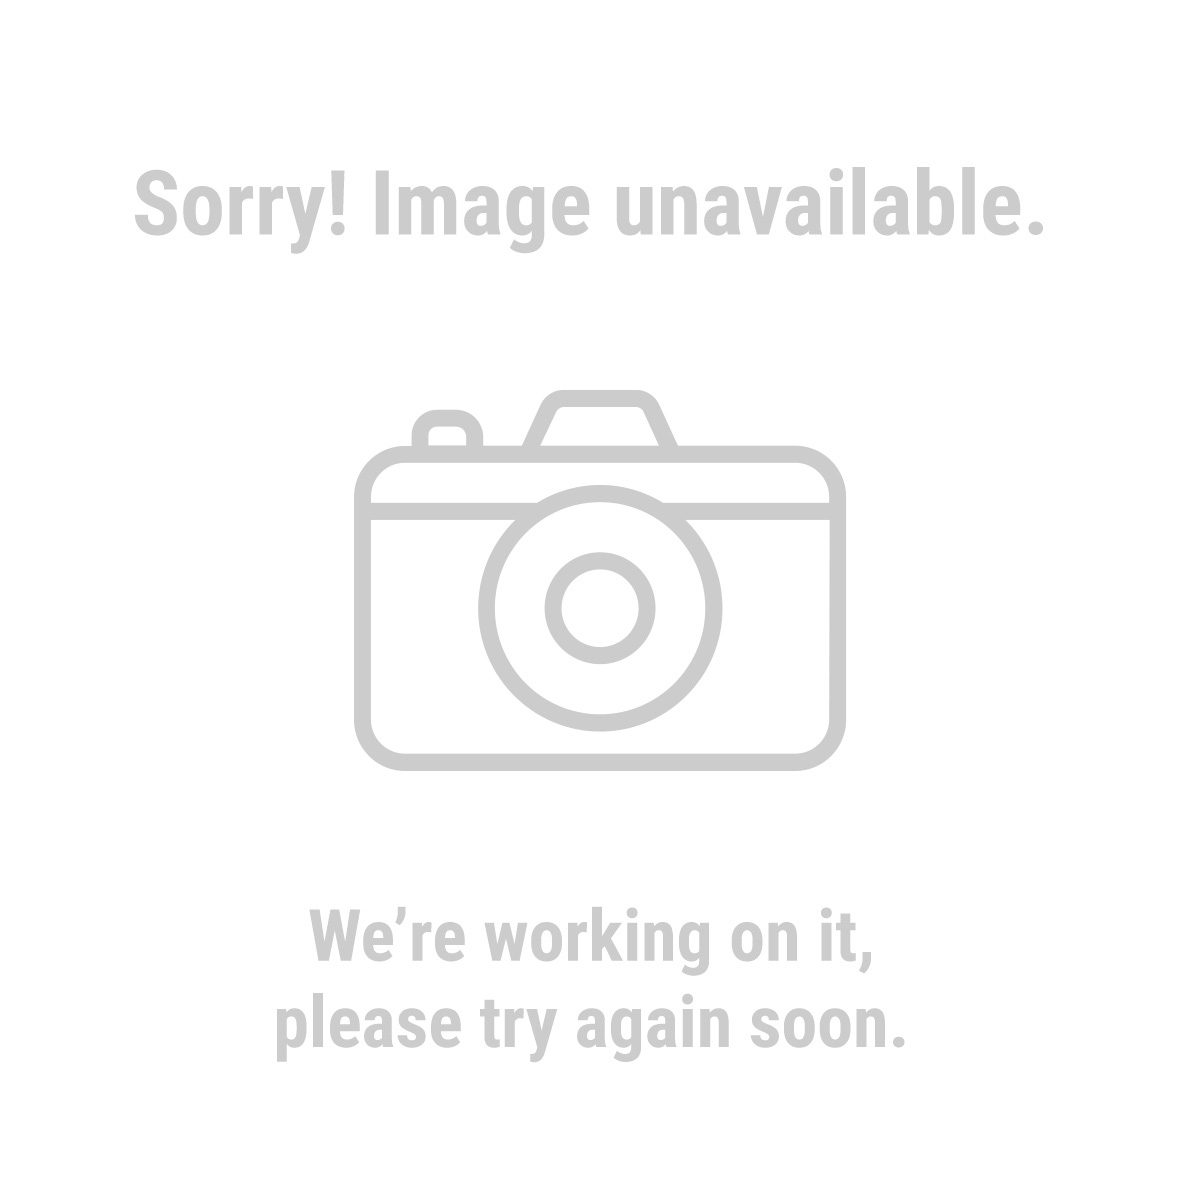 Wolverine leather work gloves extra large